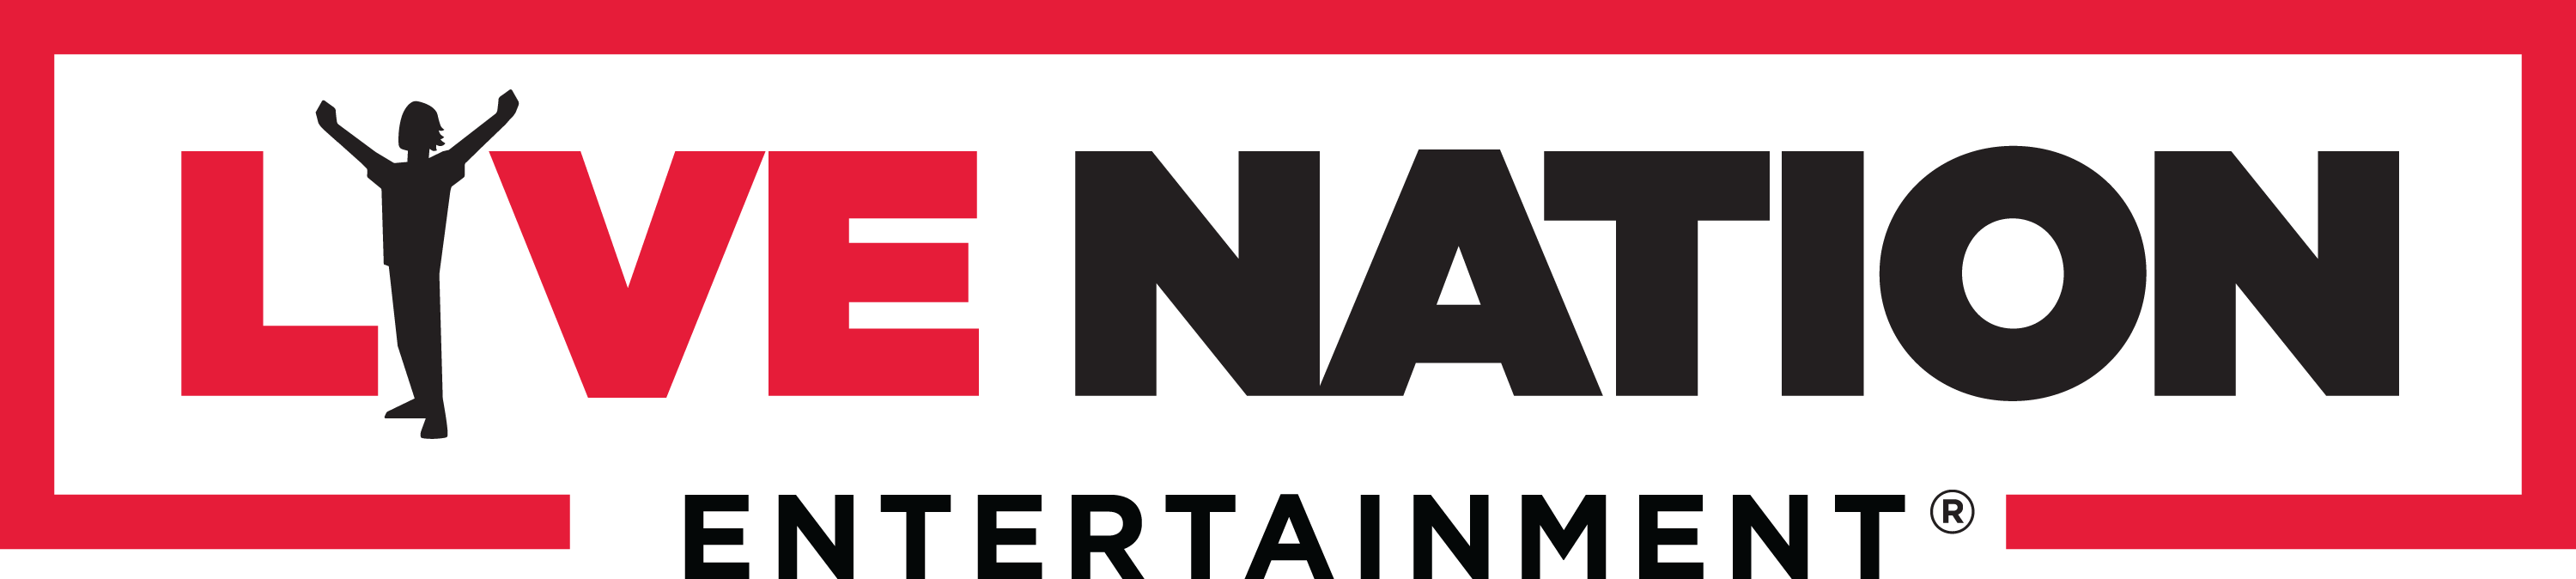 life us live nation entertainment careers home